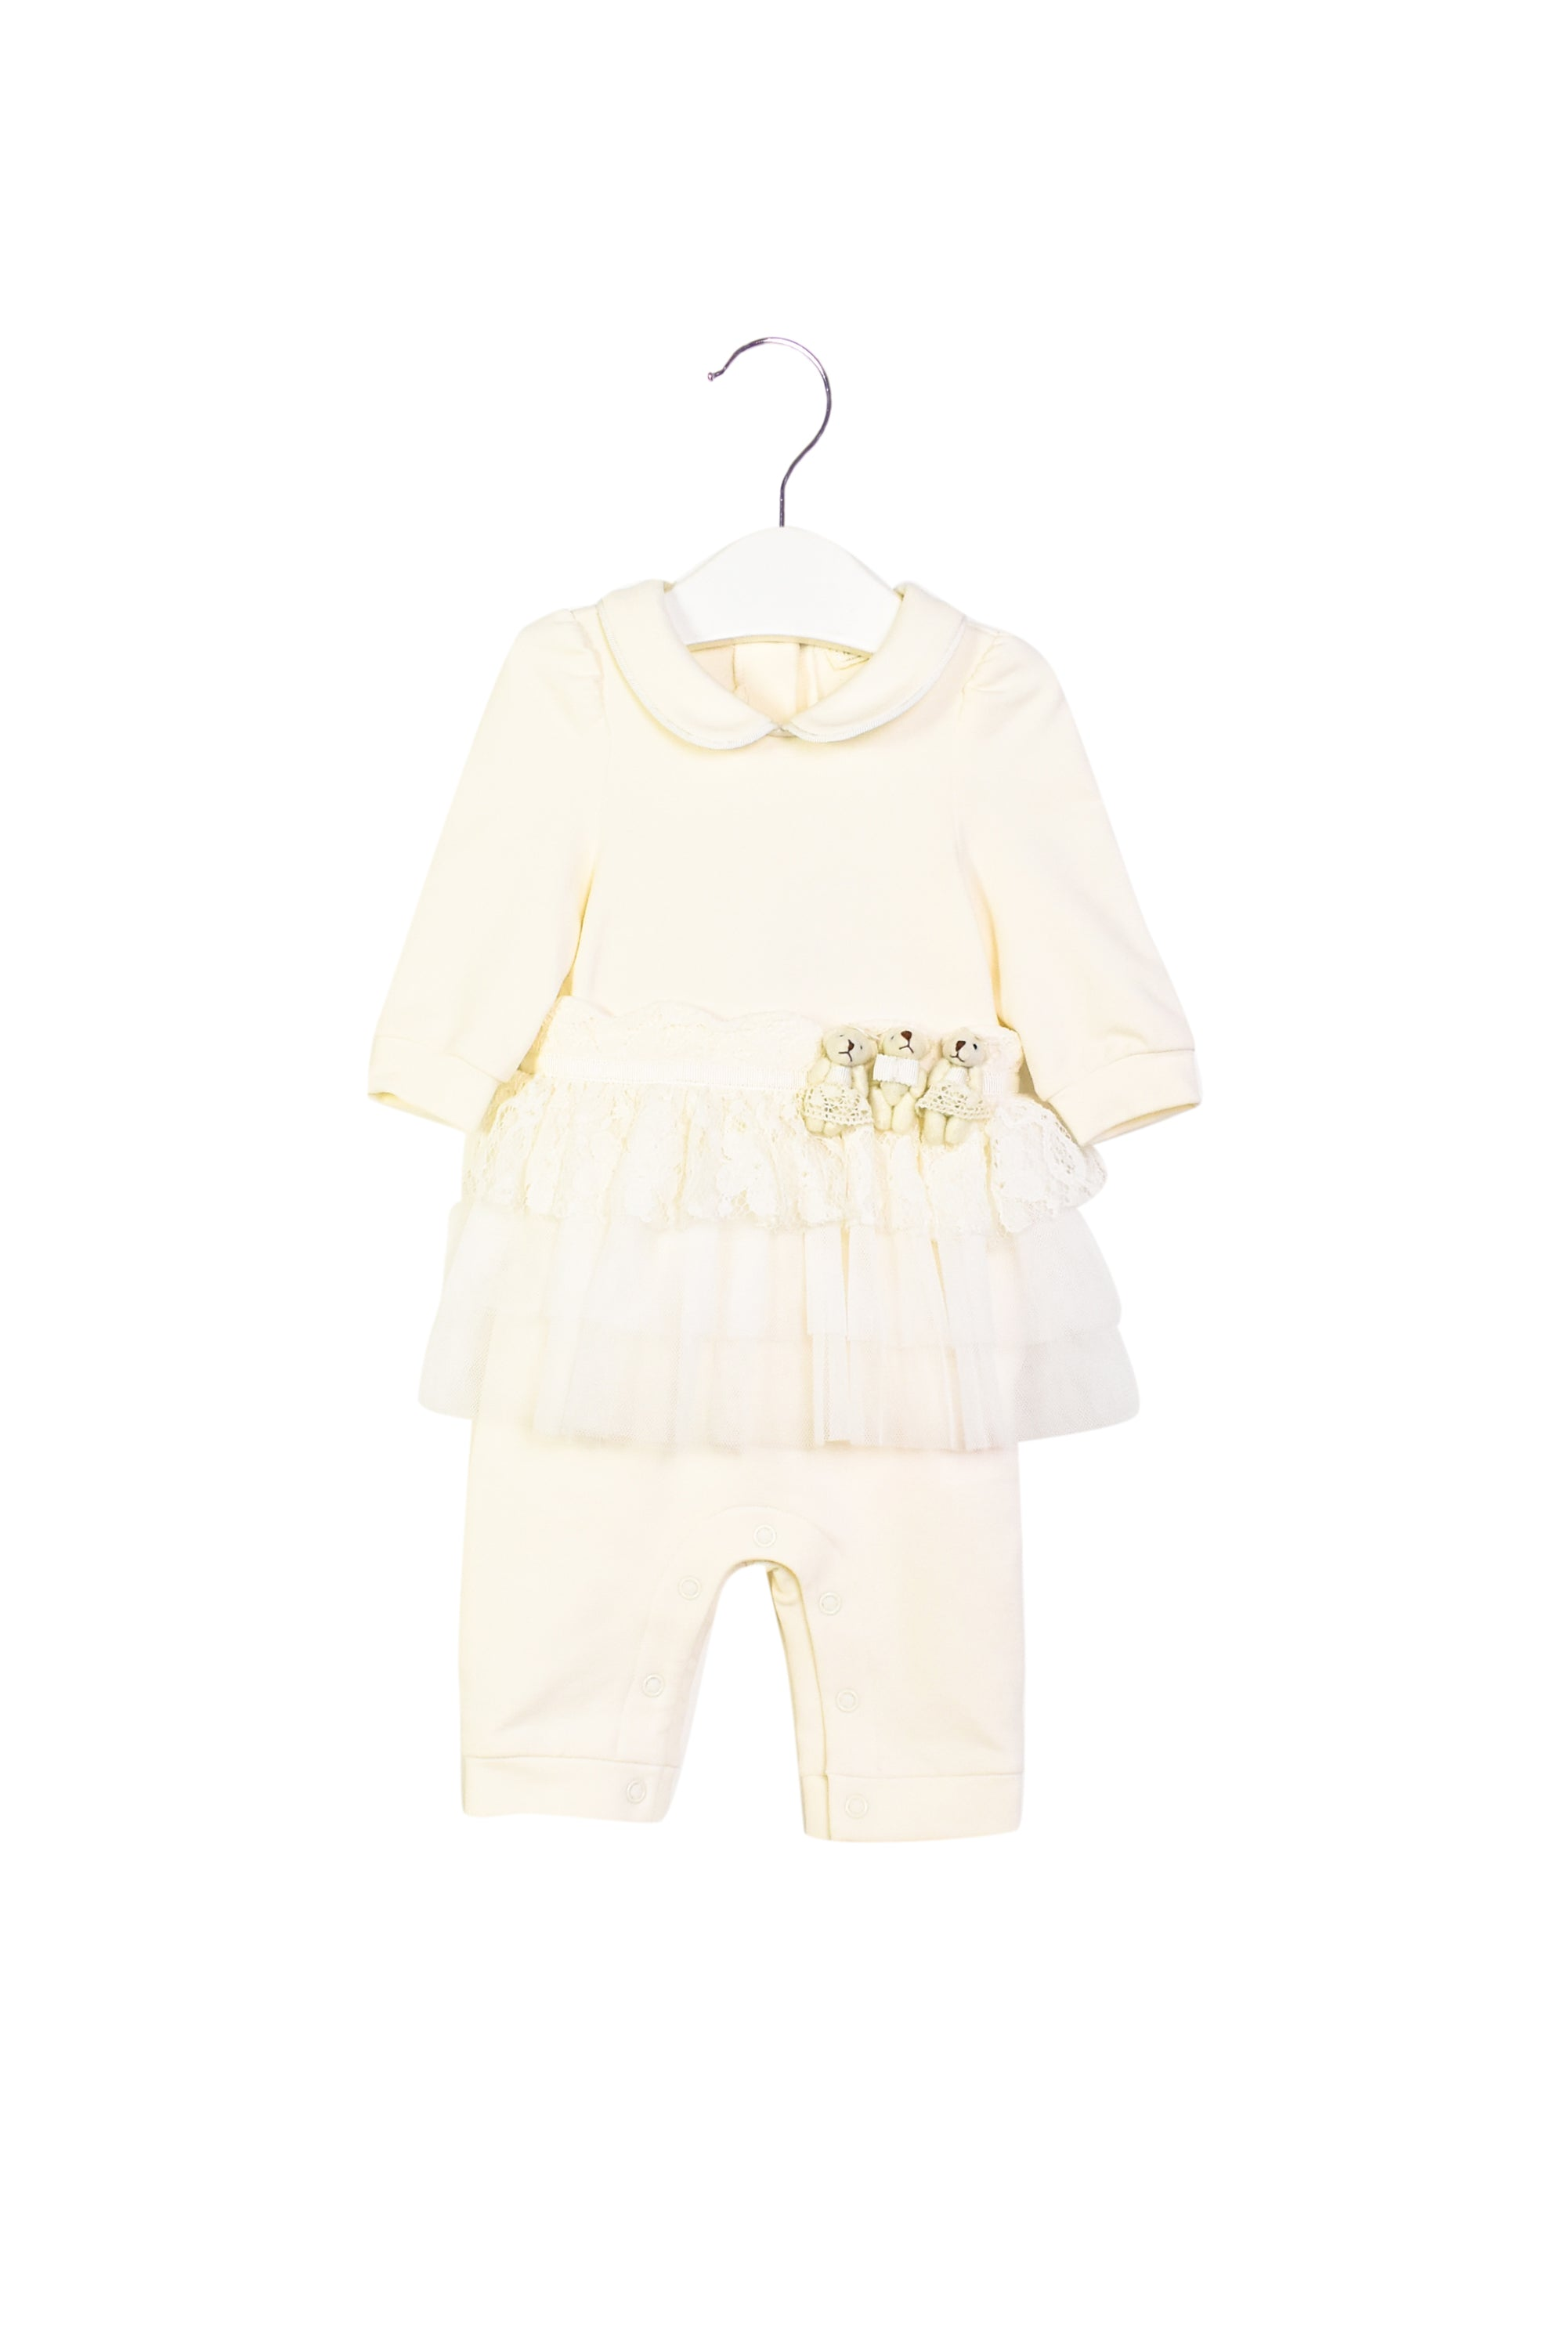 10013461 Nicholas & Bears Baby~Jumpsuit 3M at Retykle